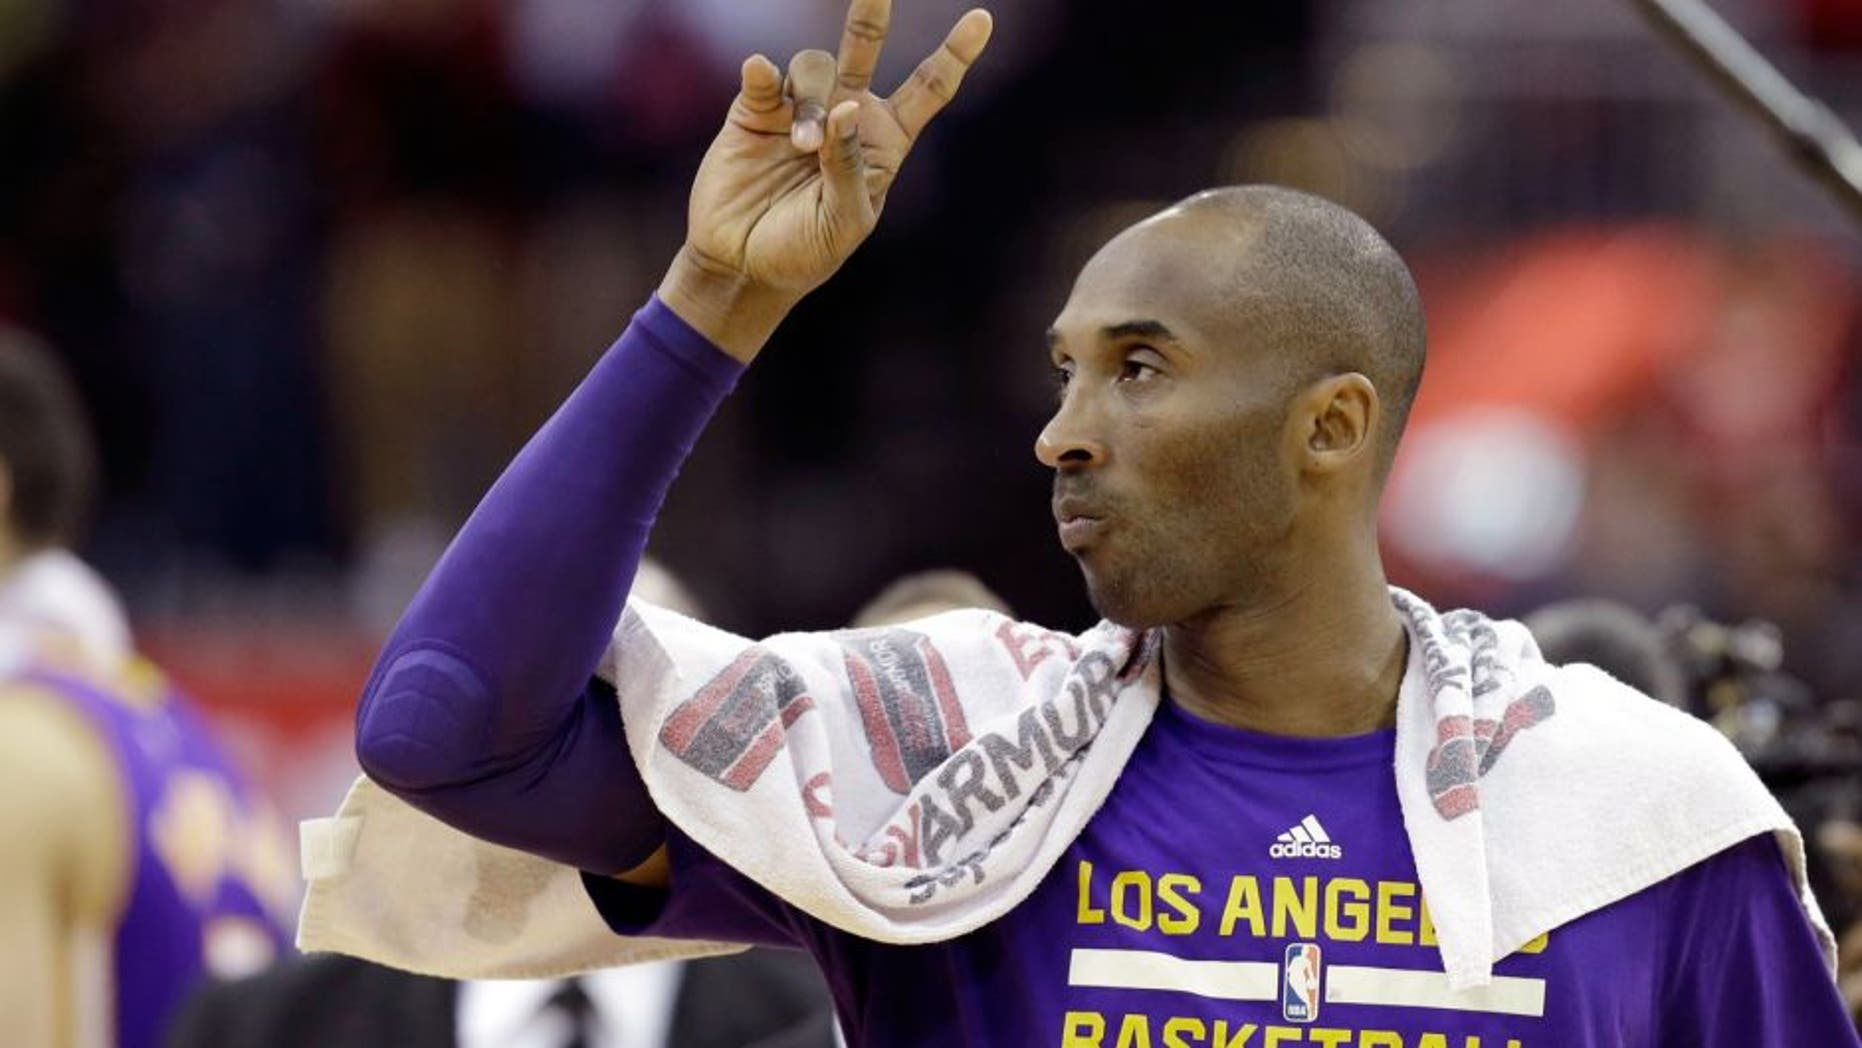 Los Angeles Lakers' Kobe Bryant acknowledges the fans as he leaves the court after an NBA basketball game against the Houston Rockets Saturday, Dec. 12, 2015, in Houston. The Rockets won 126-97. (AP Photo/Pat Sullivan)